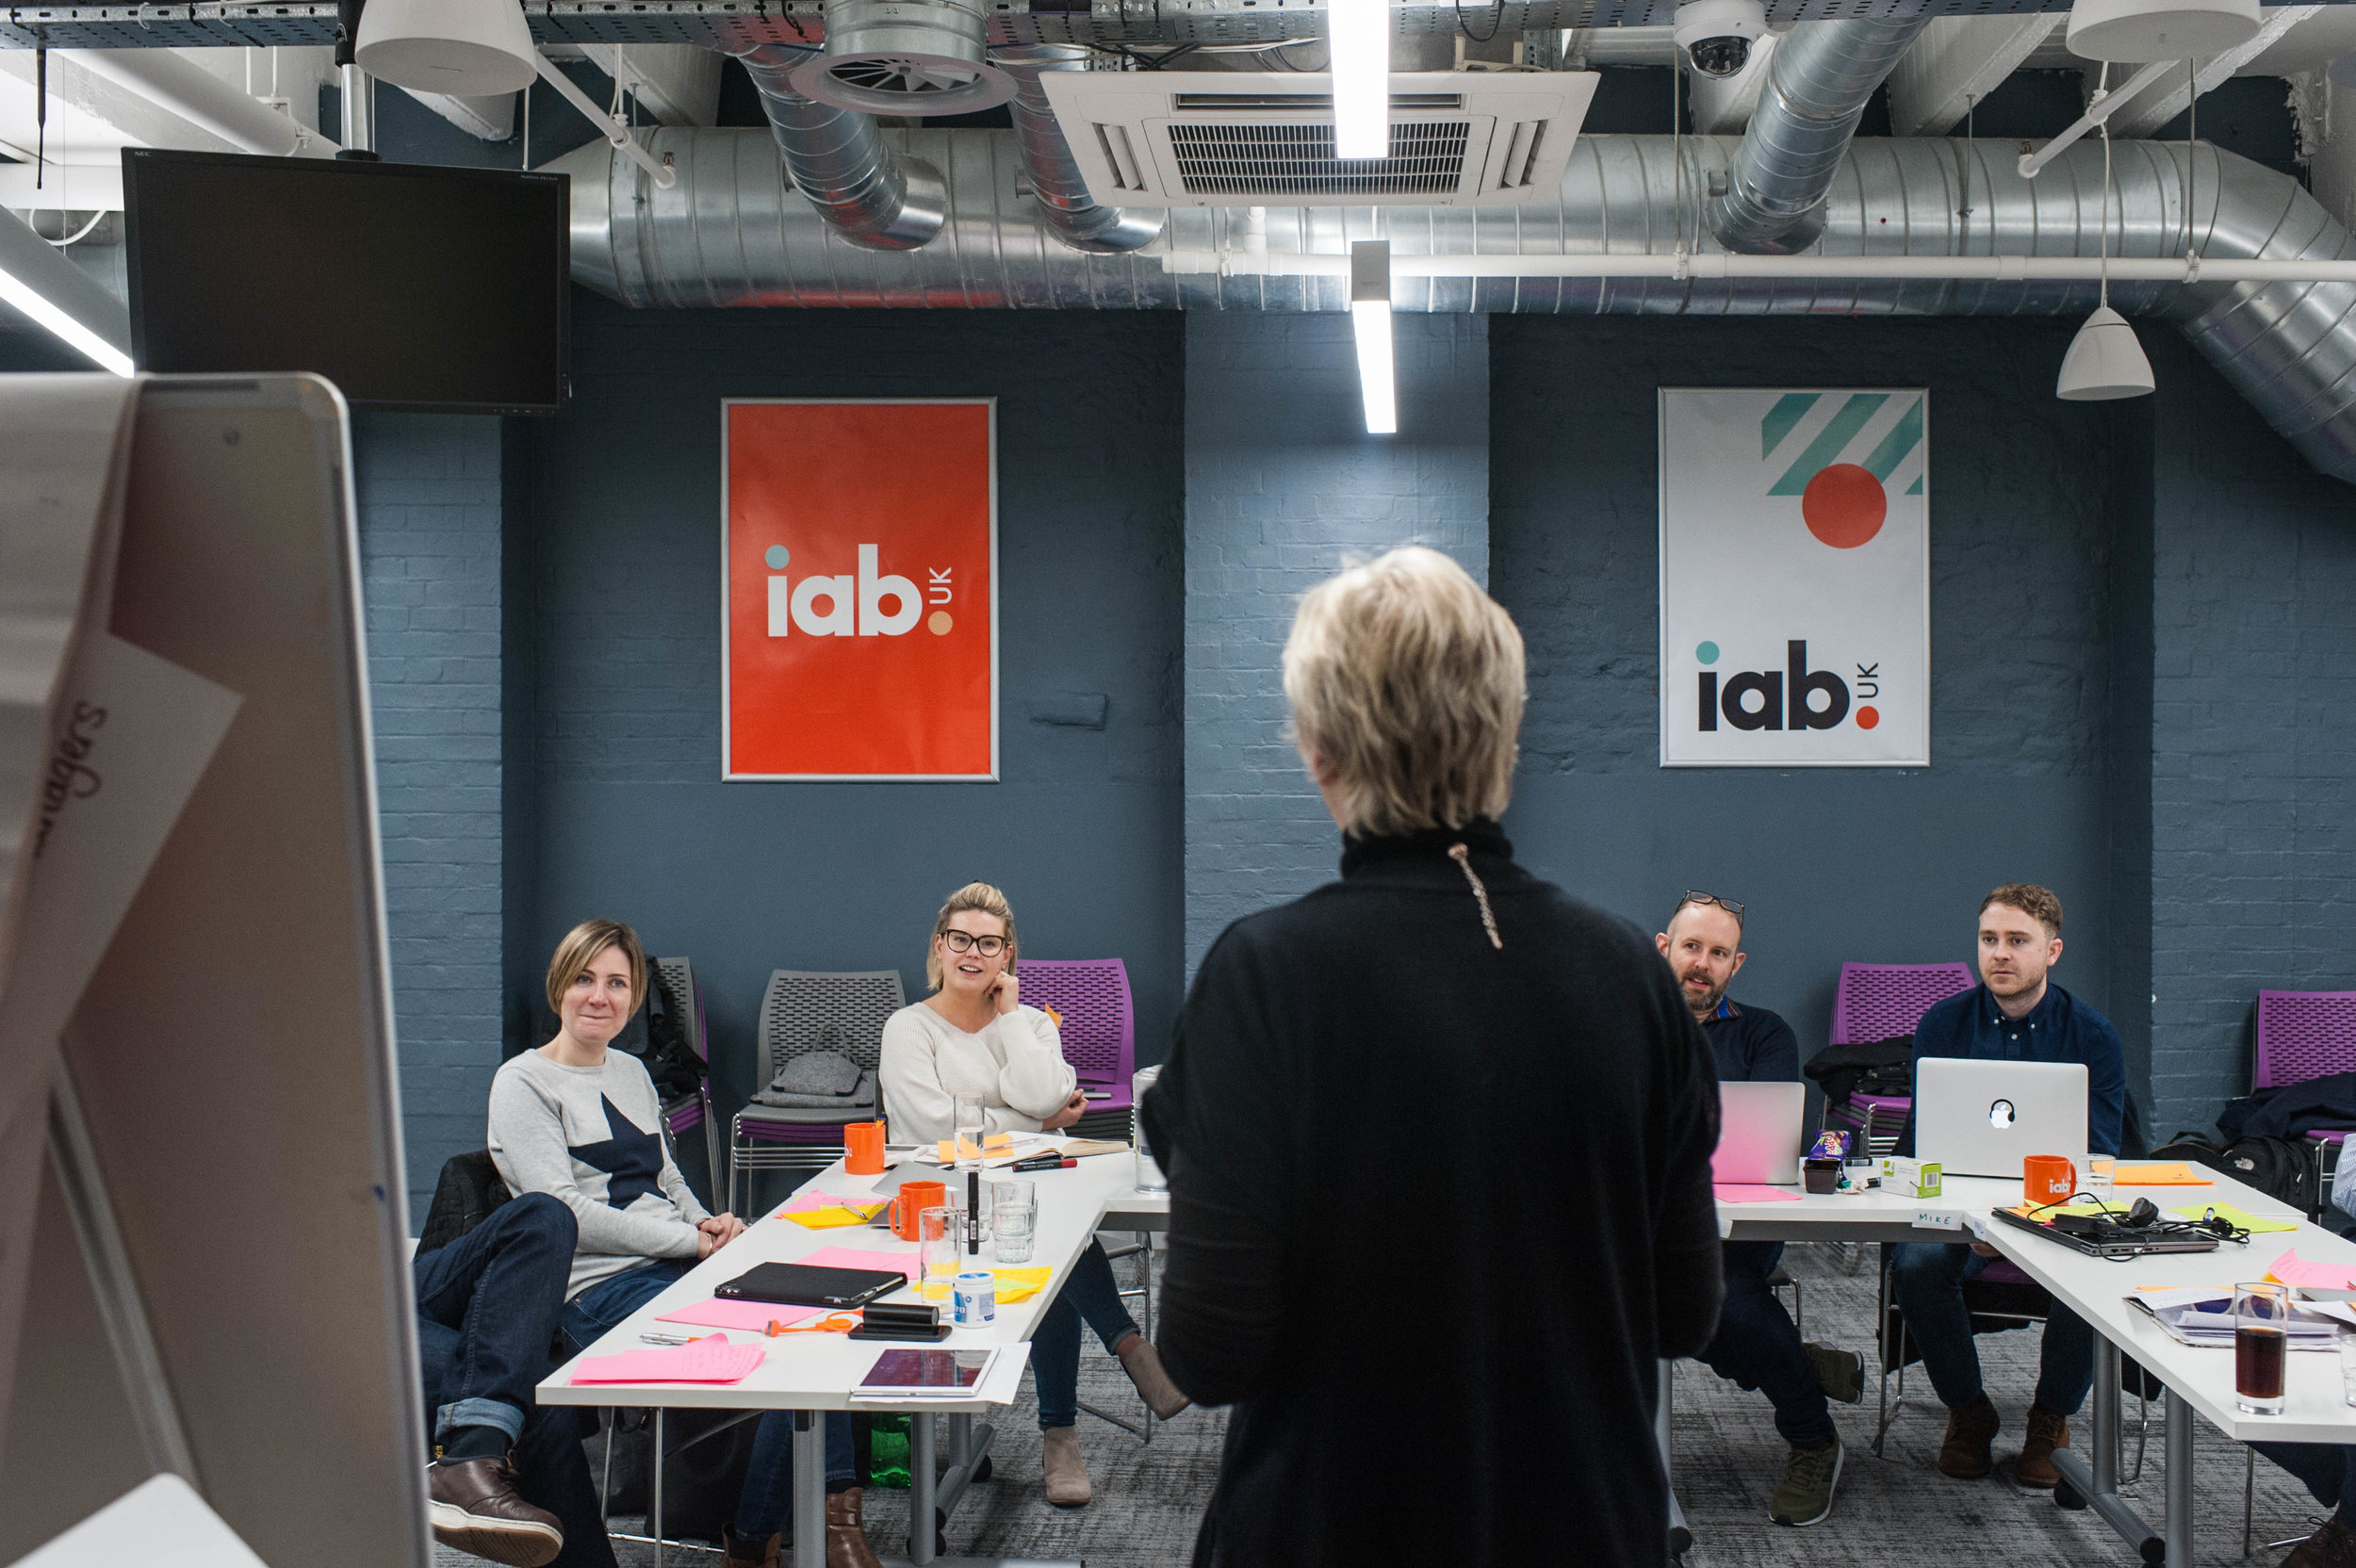 IAB Uk_Incidental Shots_SM (308 of 312).jpg